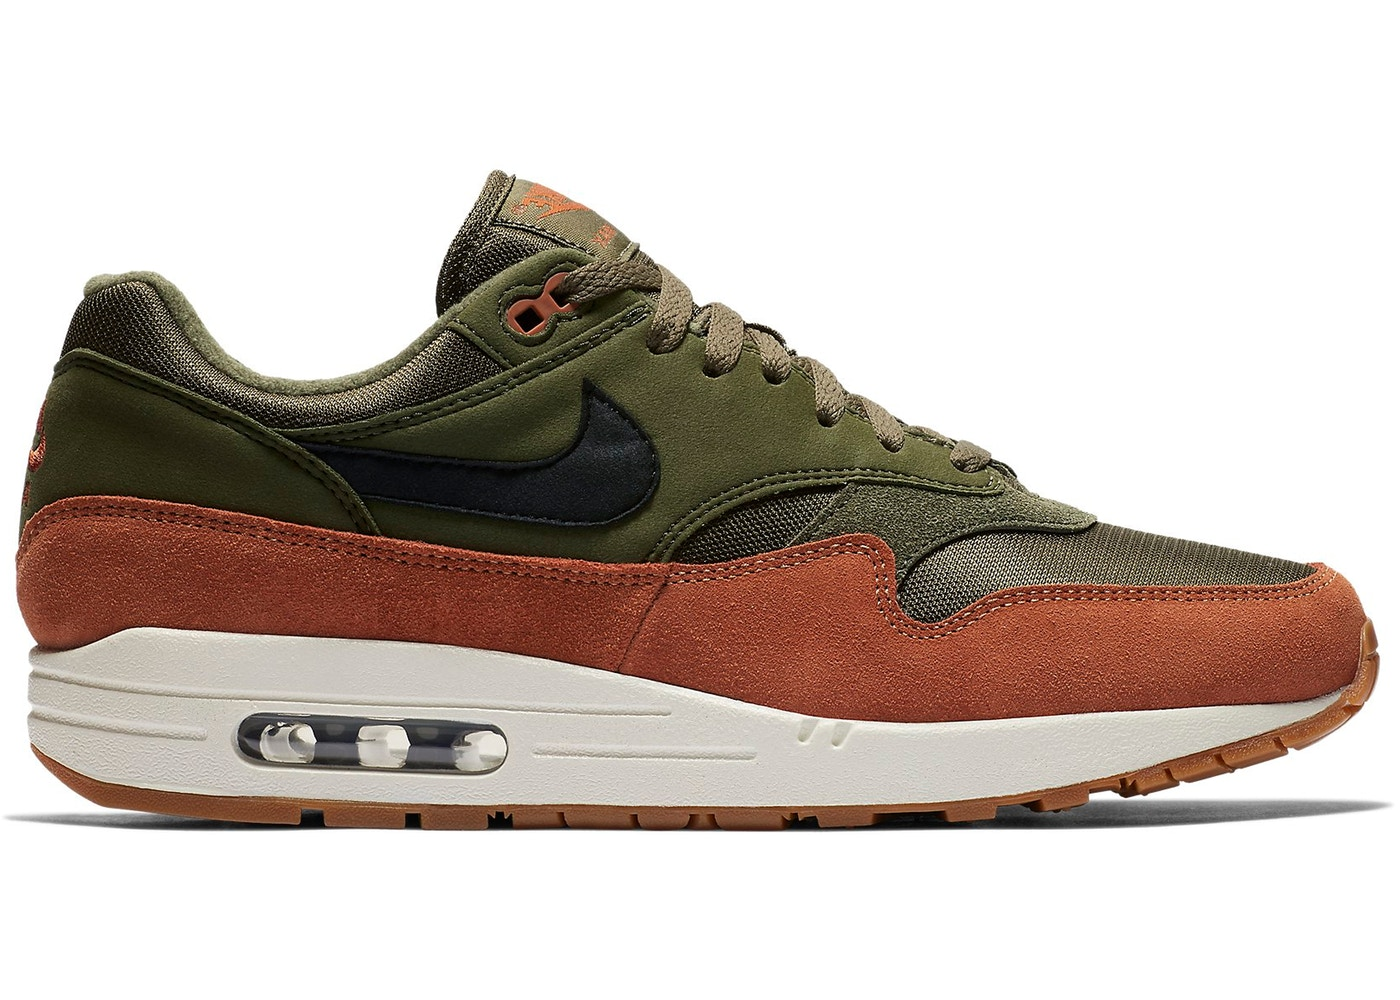 los angeles 268c8 1c339 Air Max 1 Olive Canvas Dark Russet - AH8145-301